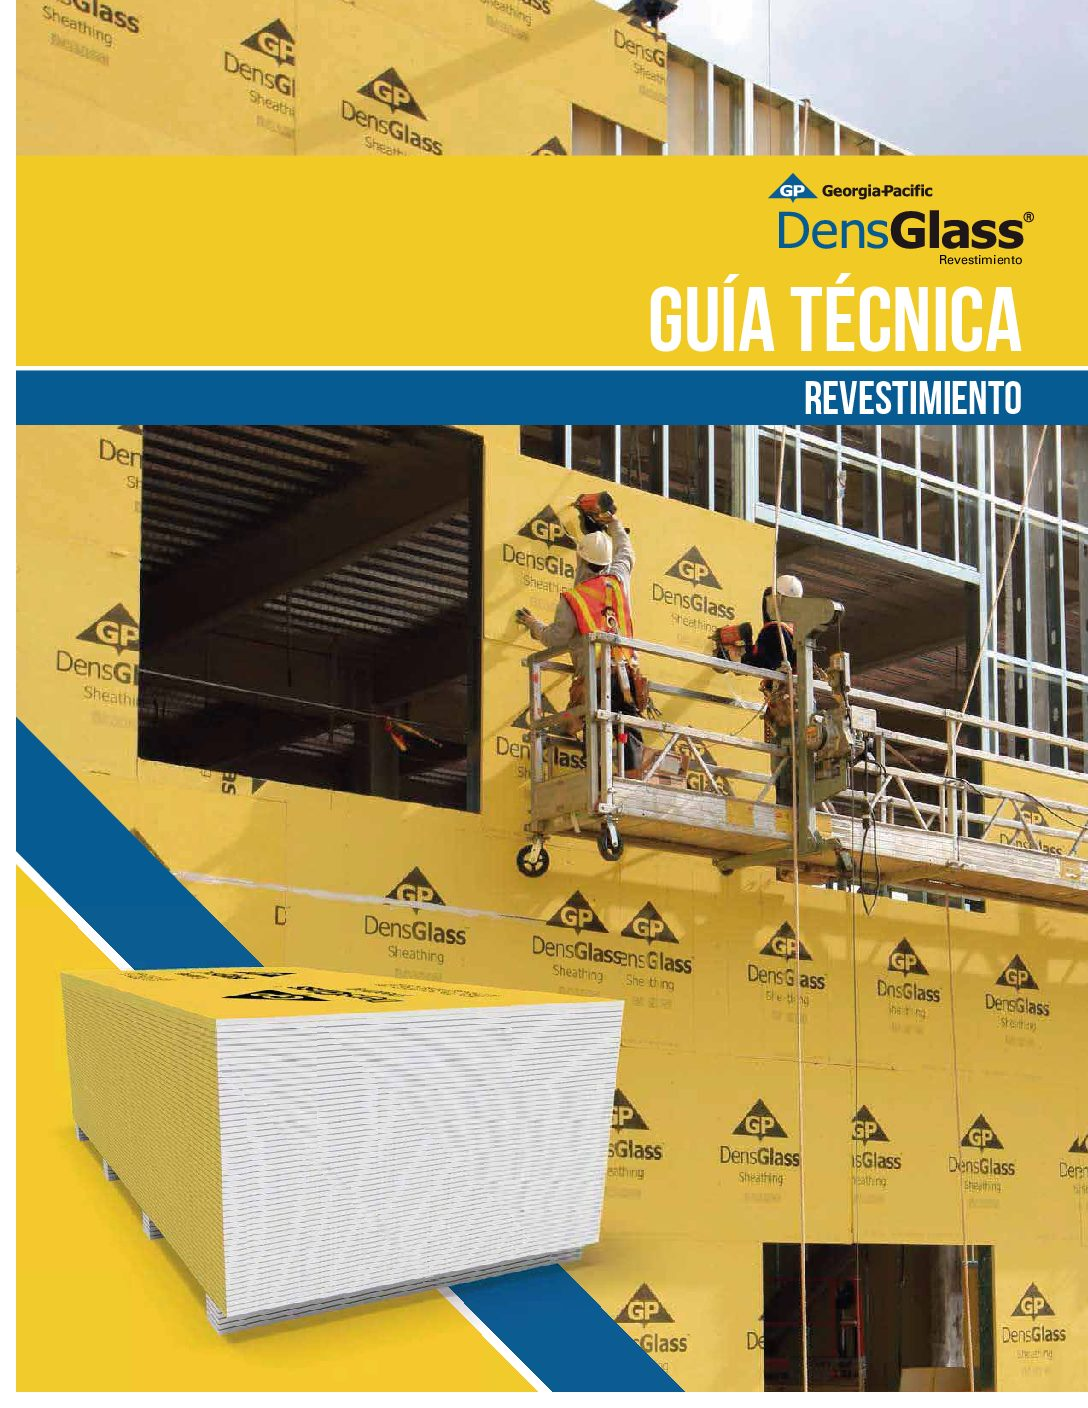 Densglass Sheathing Exterior Fiberglass Mat Gypsum Wall Sheathing